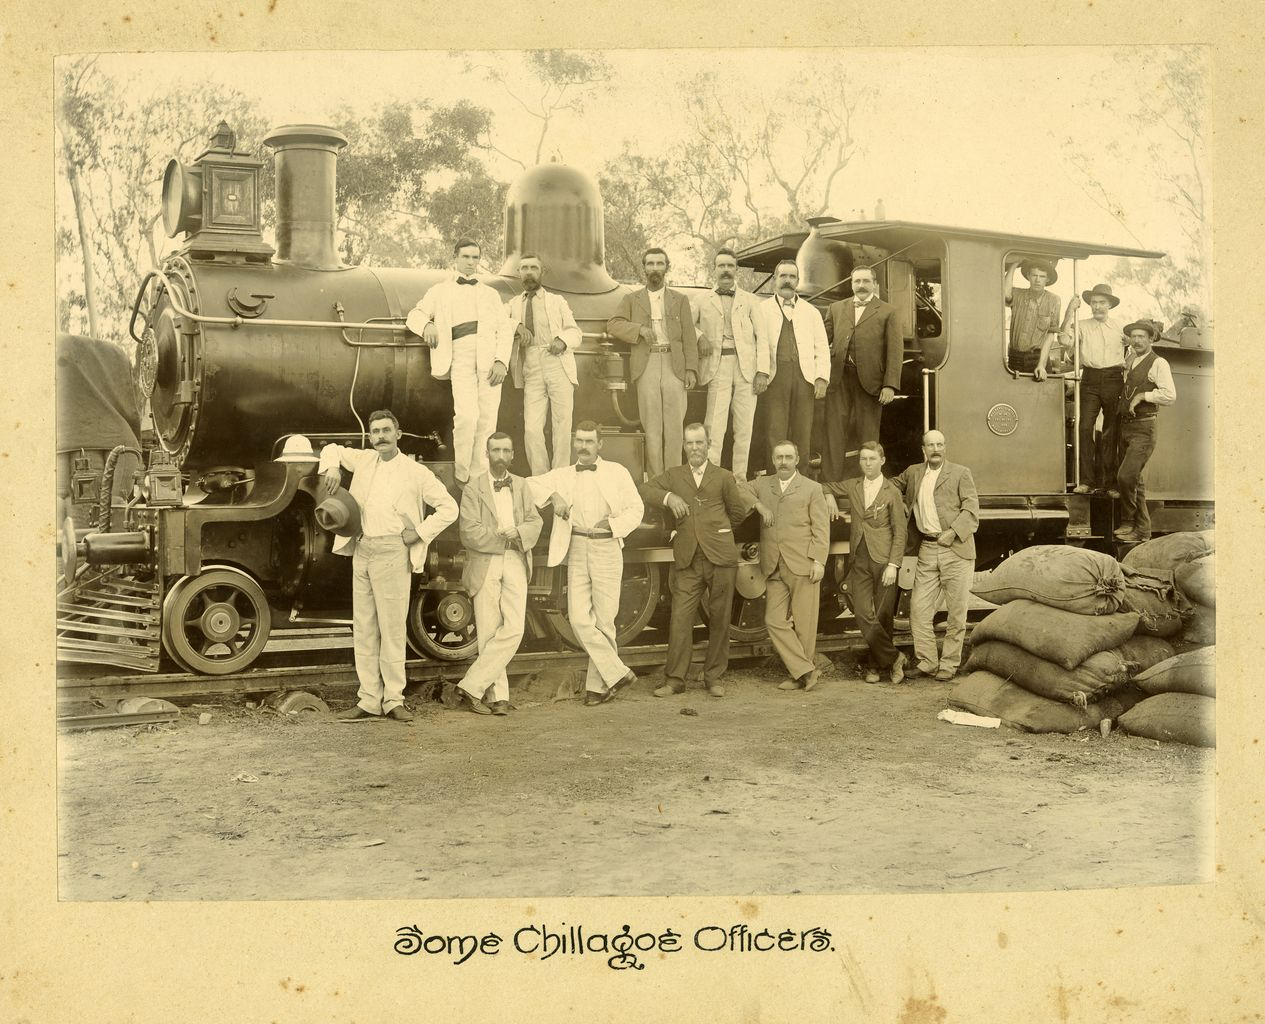 Image of Chillagoe officers standing in front and on locamotive.